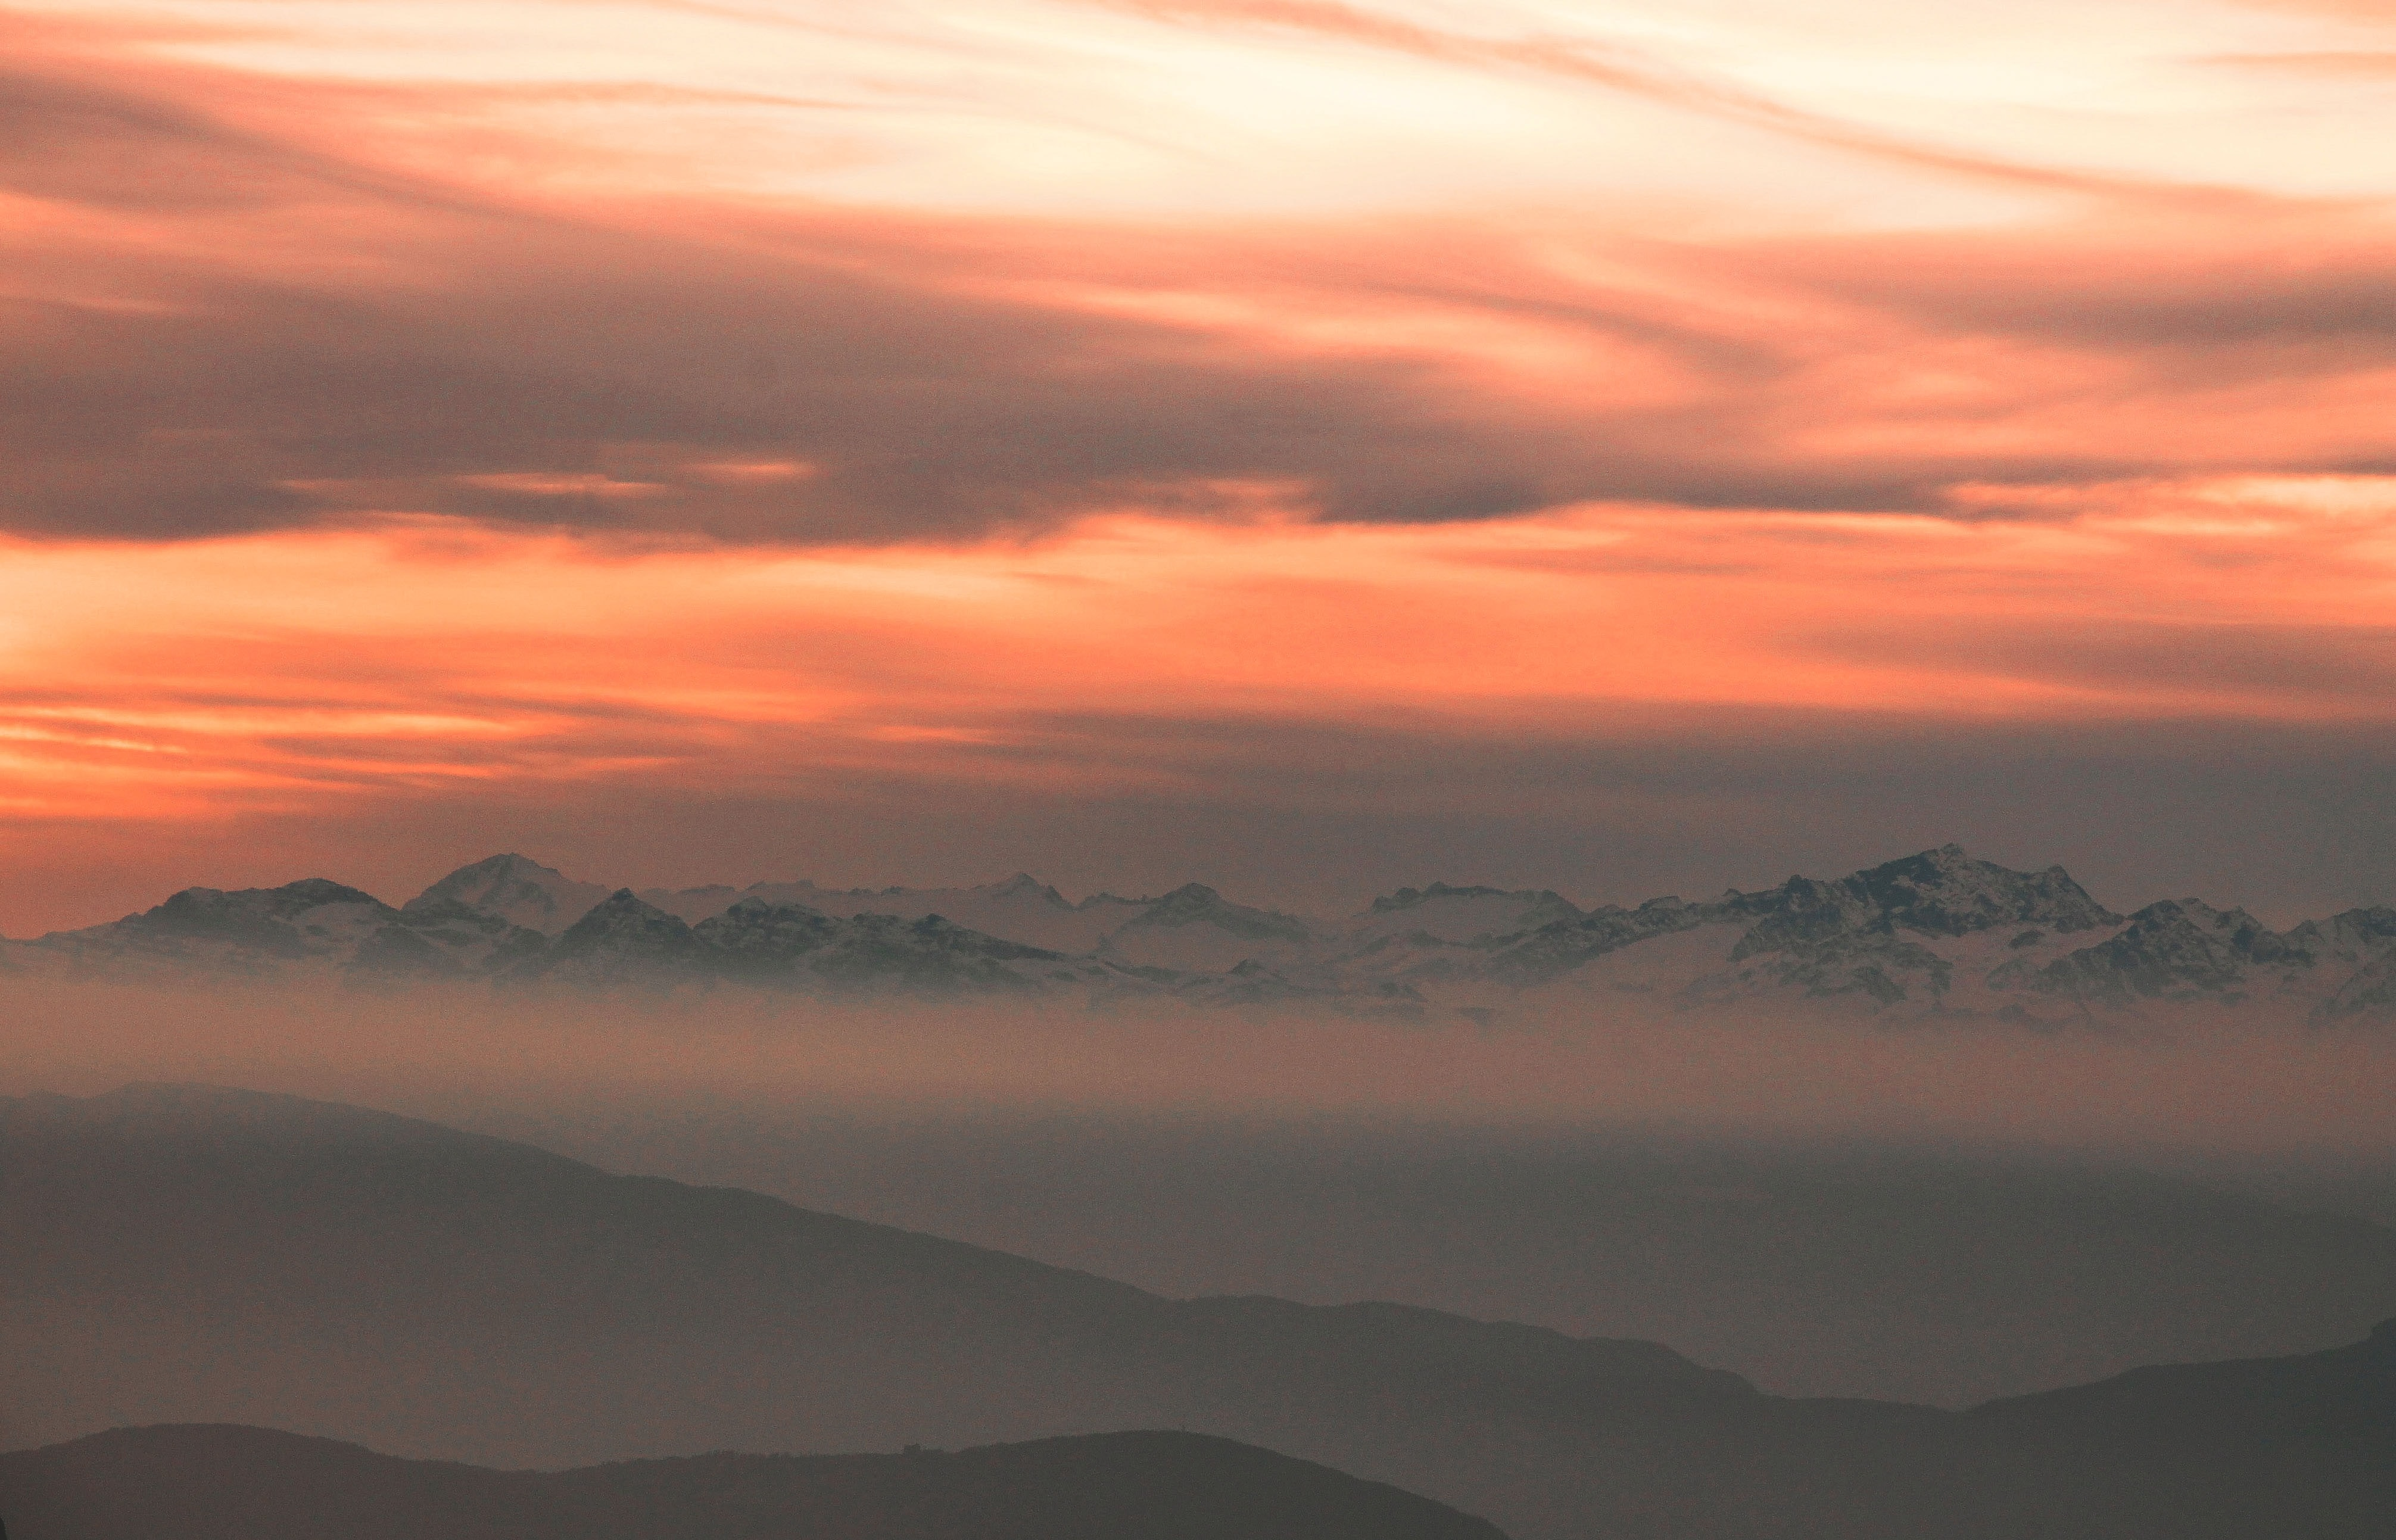 Shades of orange sunset above mountains in Ortisei